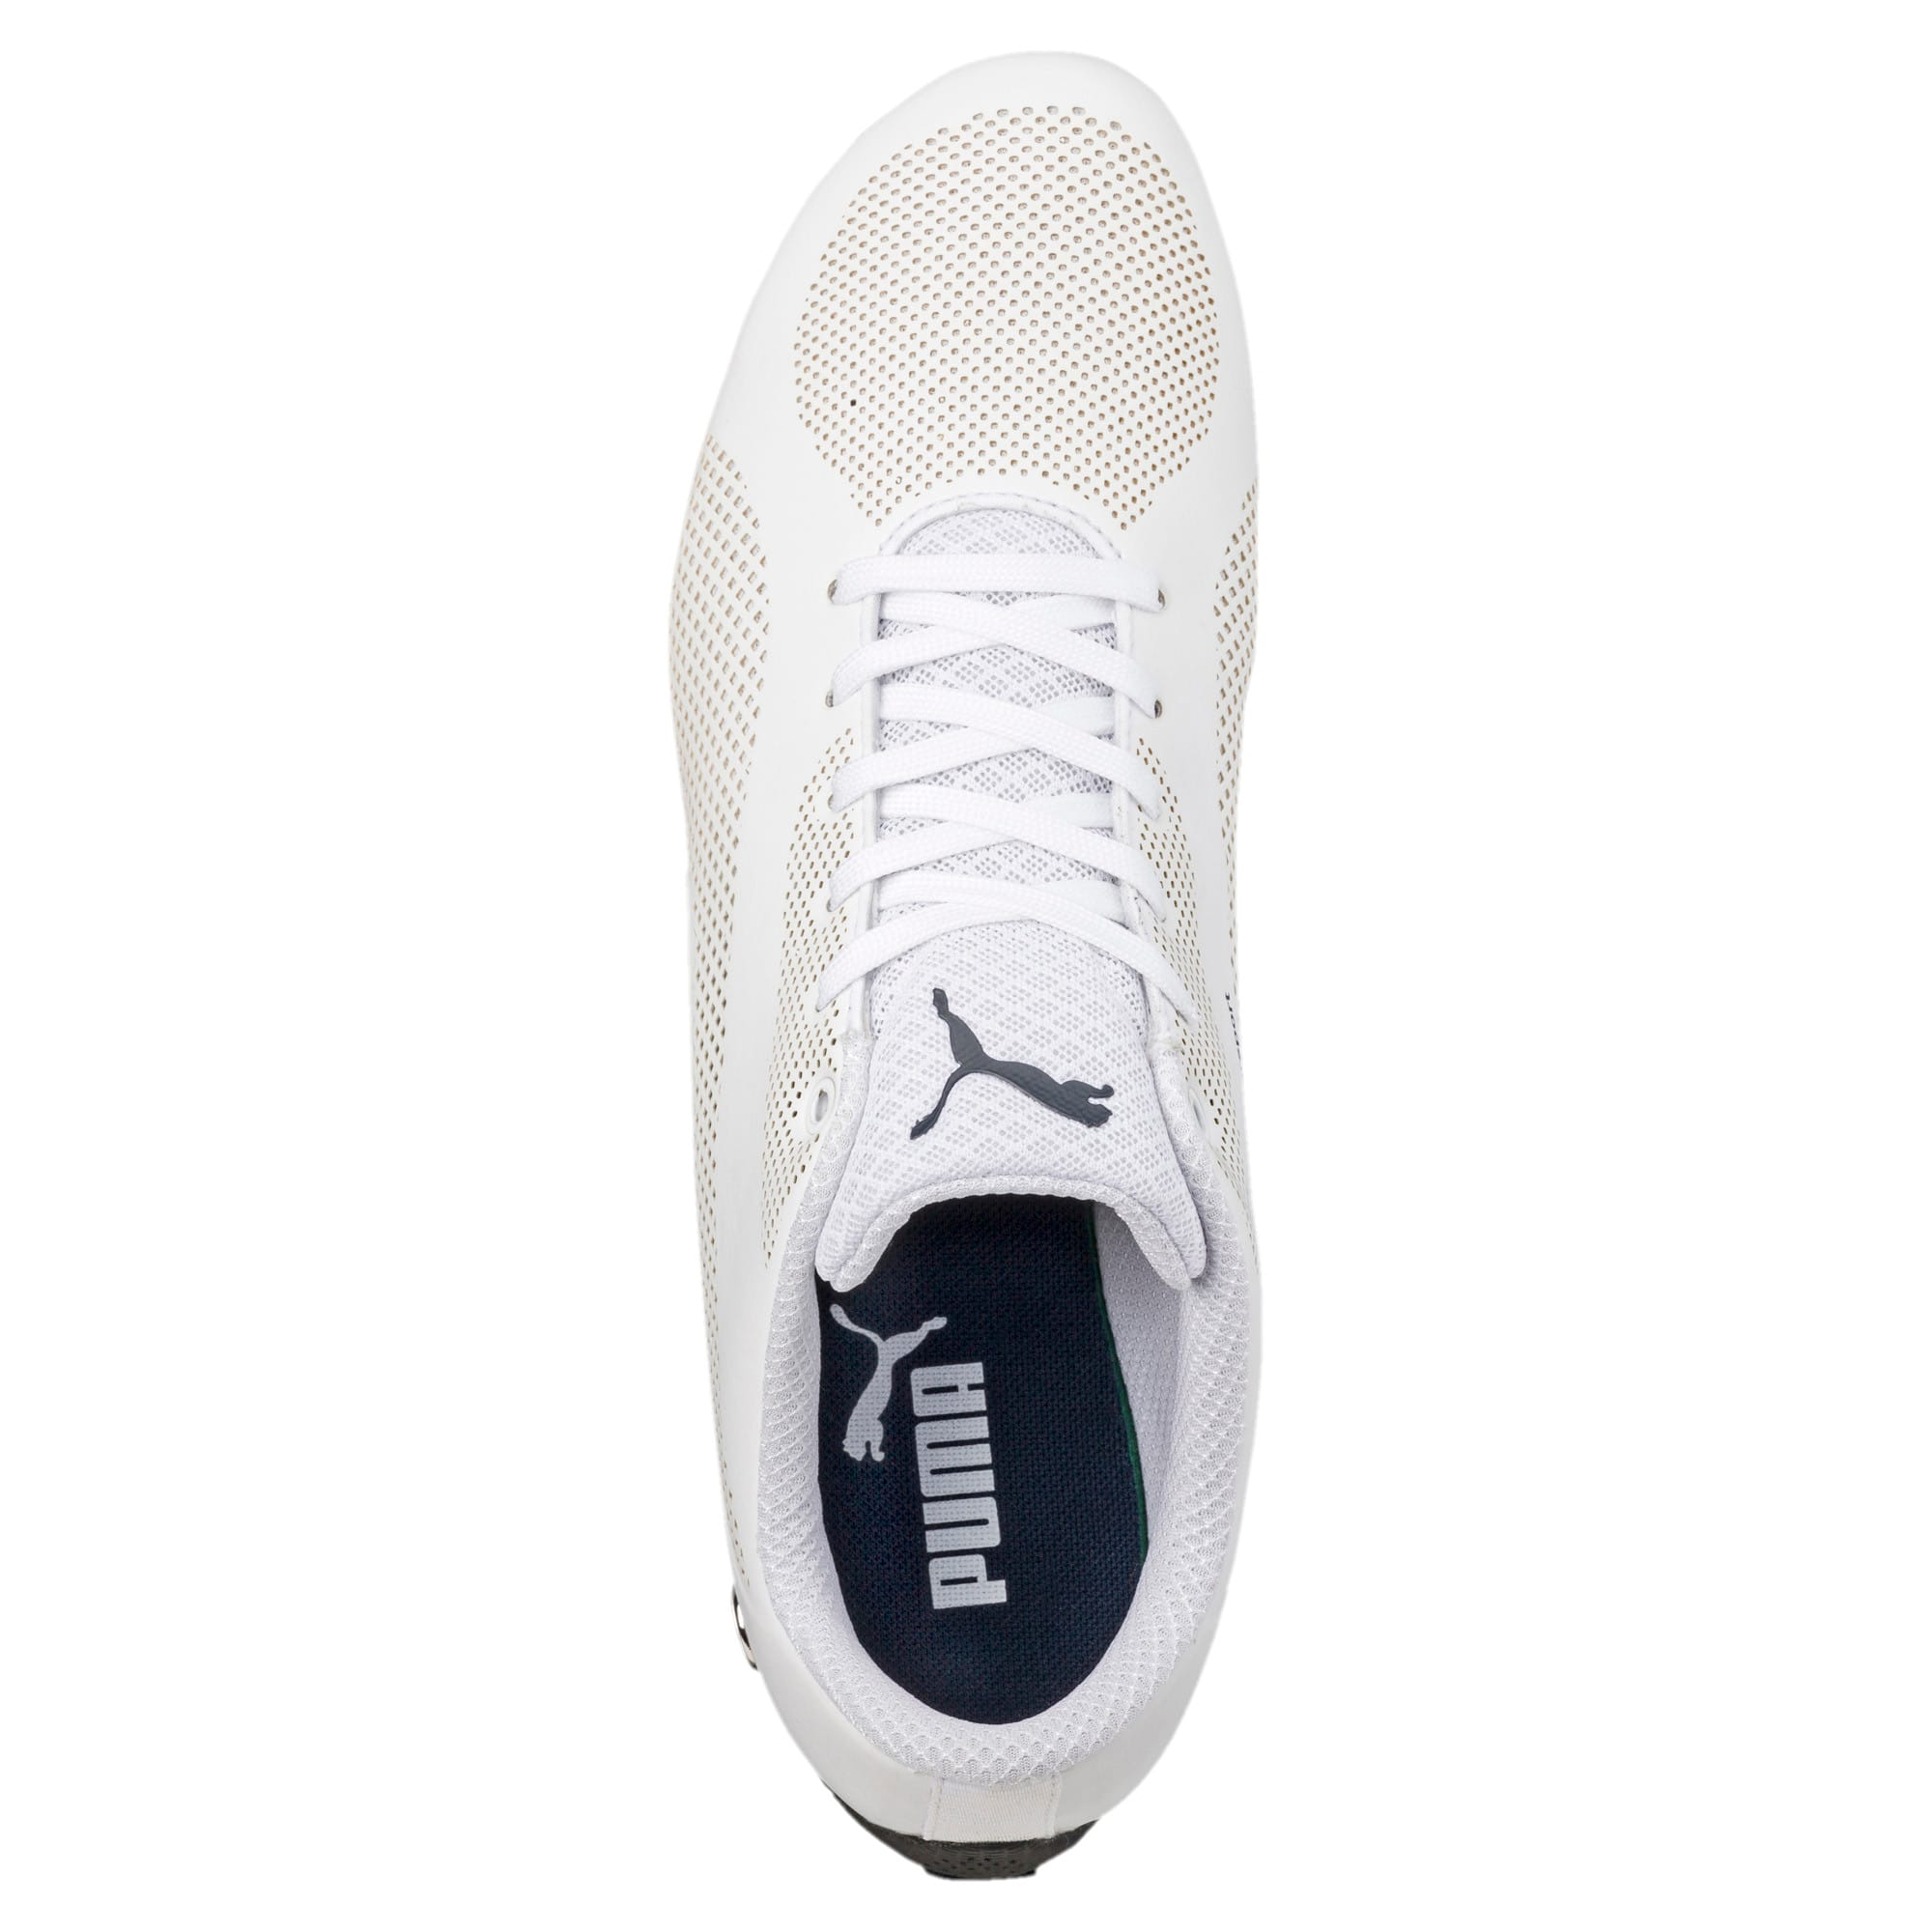 BMW Motorsport Drift Cat 5 Ultra Shoes, Puma Wht-Team Blu-Hgh Rsk Rd, large